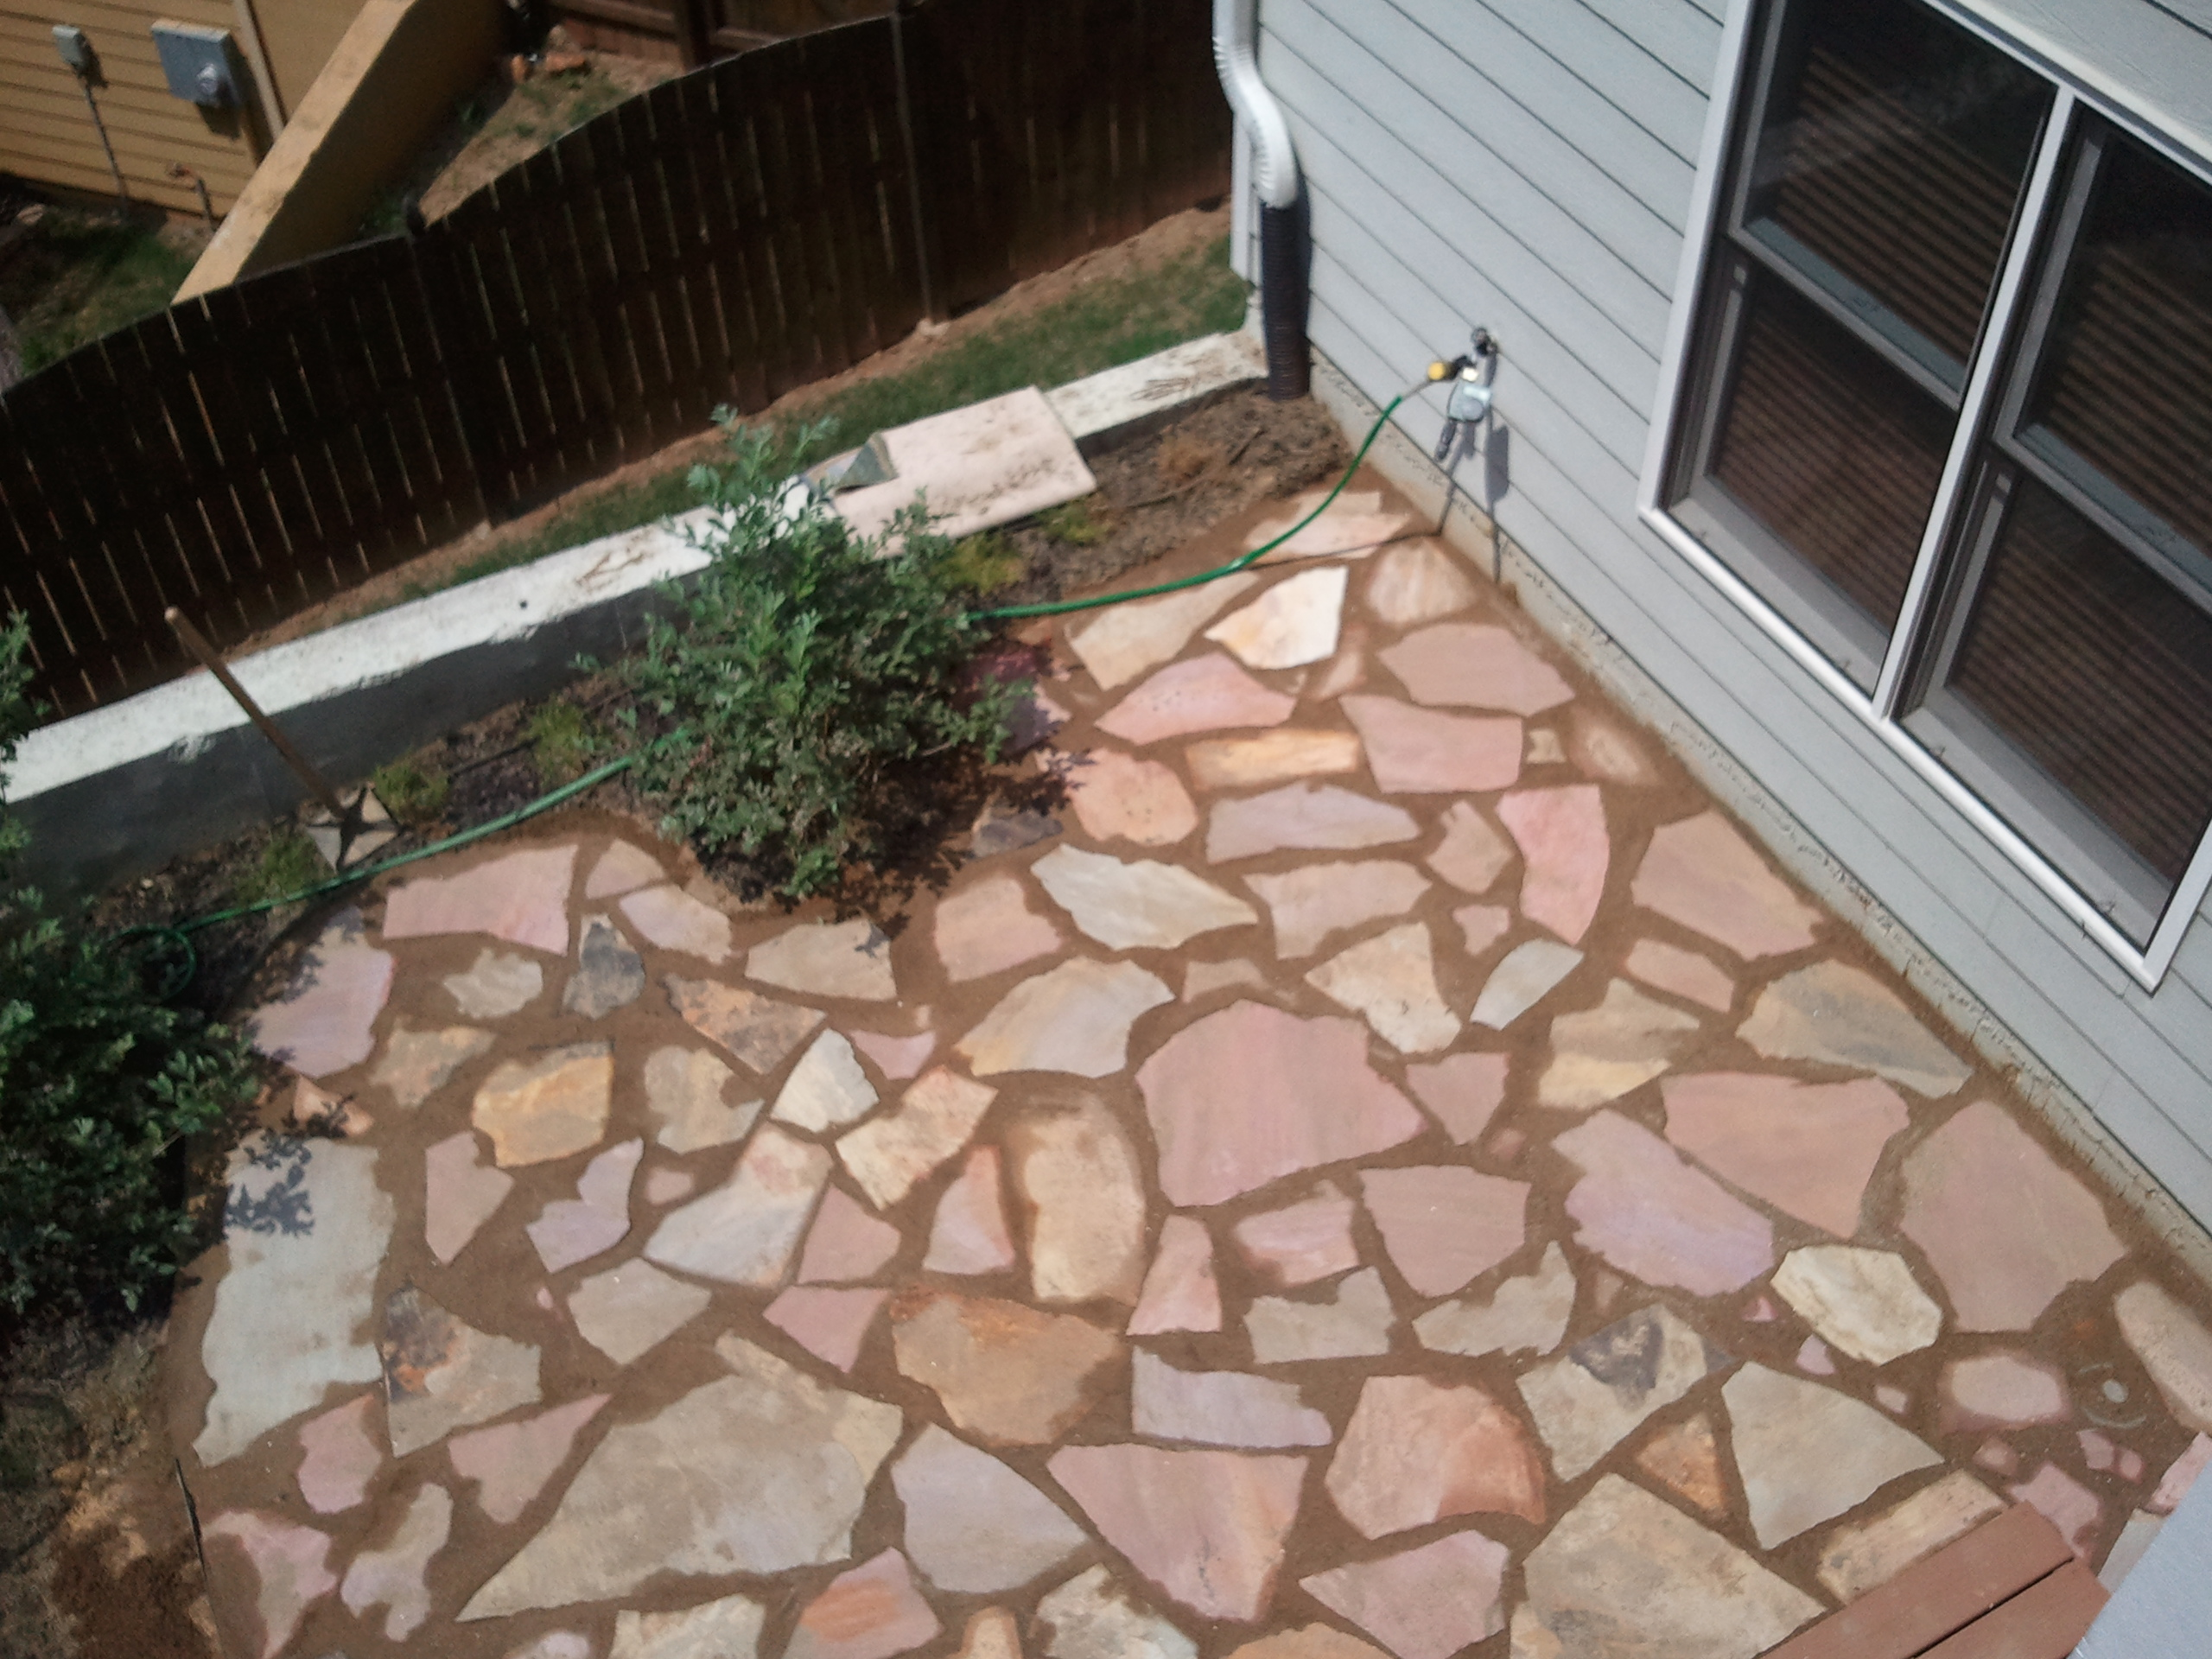 Flagstone Patio In Sand And Mortar Mix